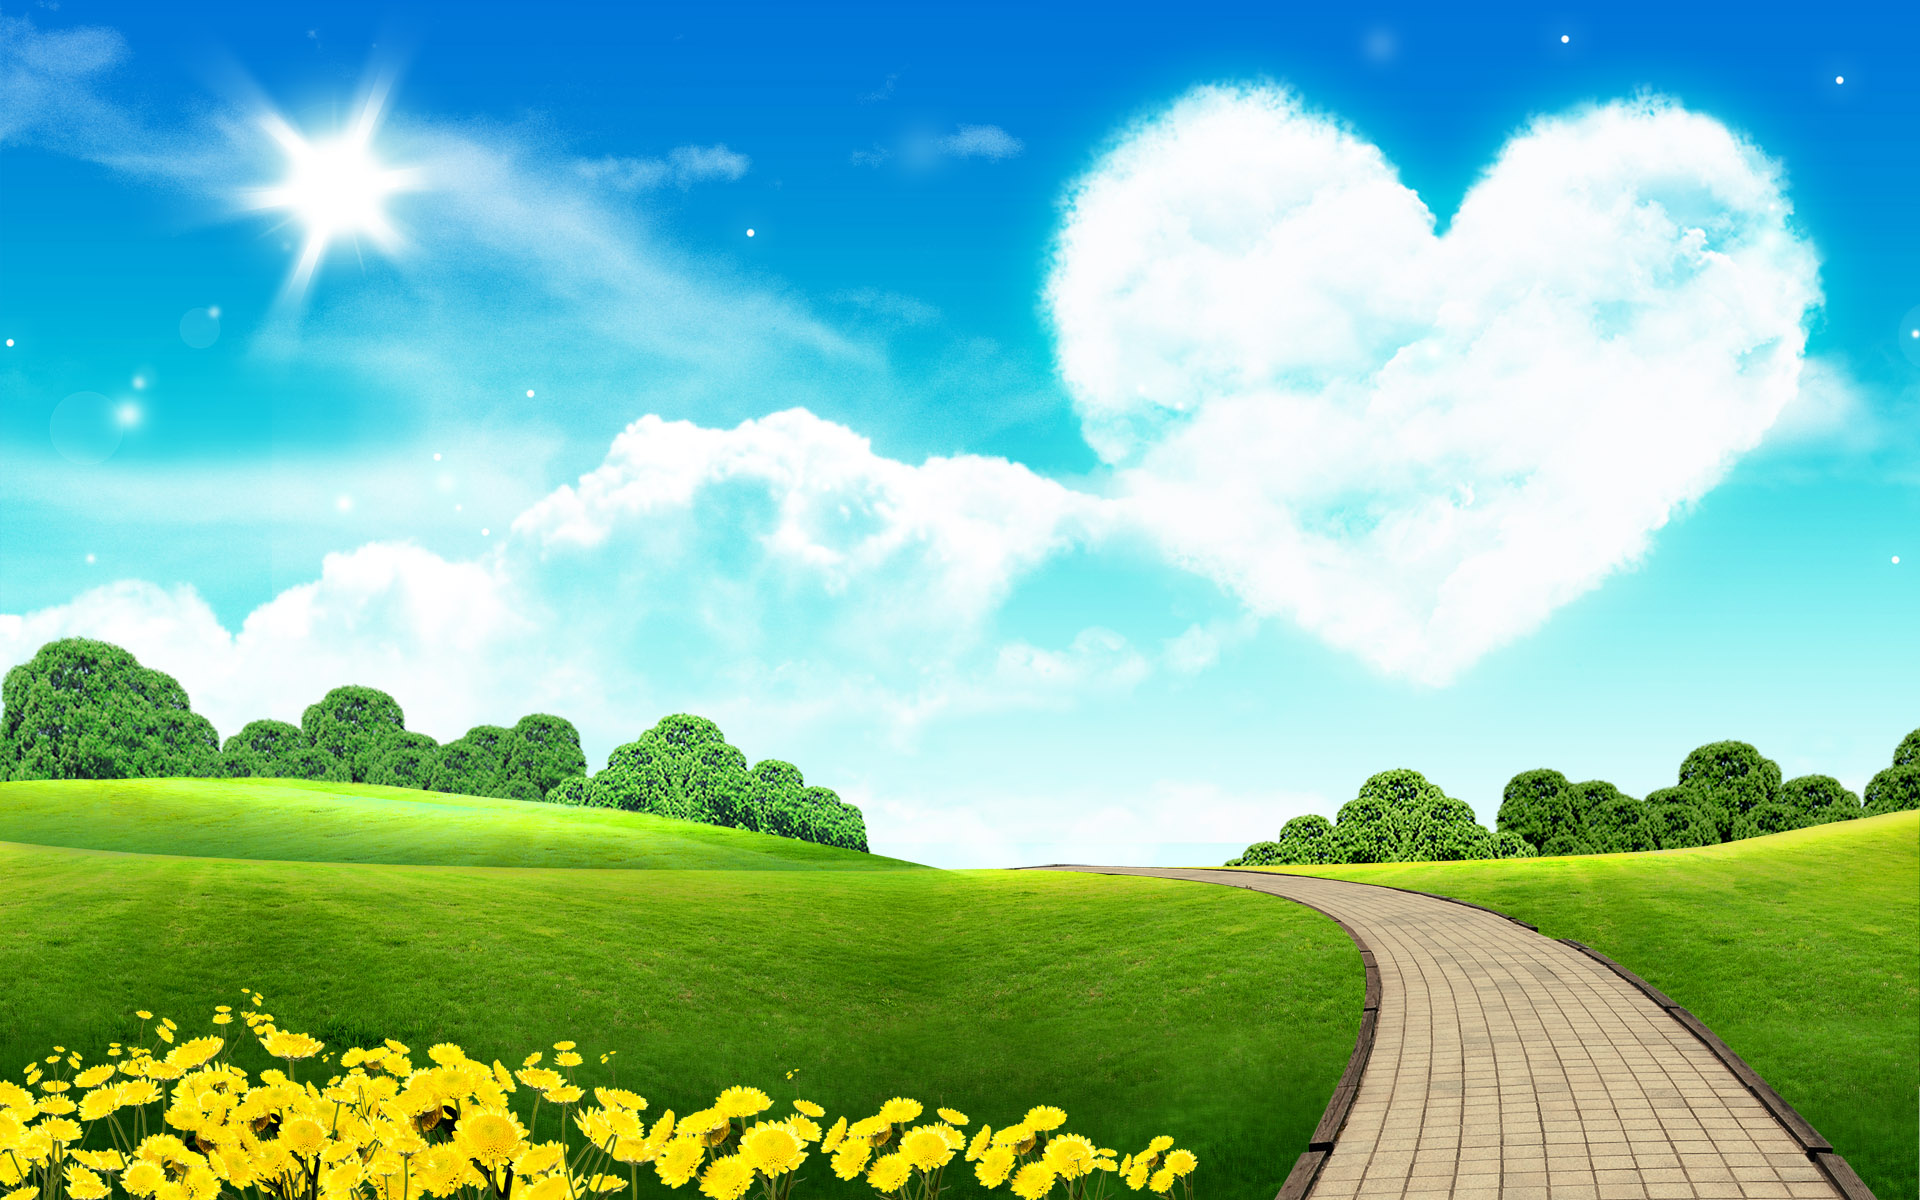 This Free Scenery Wallpaper Comes With A Lovely Sky The Decoration Of Heart Shape Cloud Beautiful Flowers And Green Trees Grass